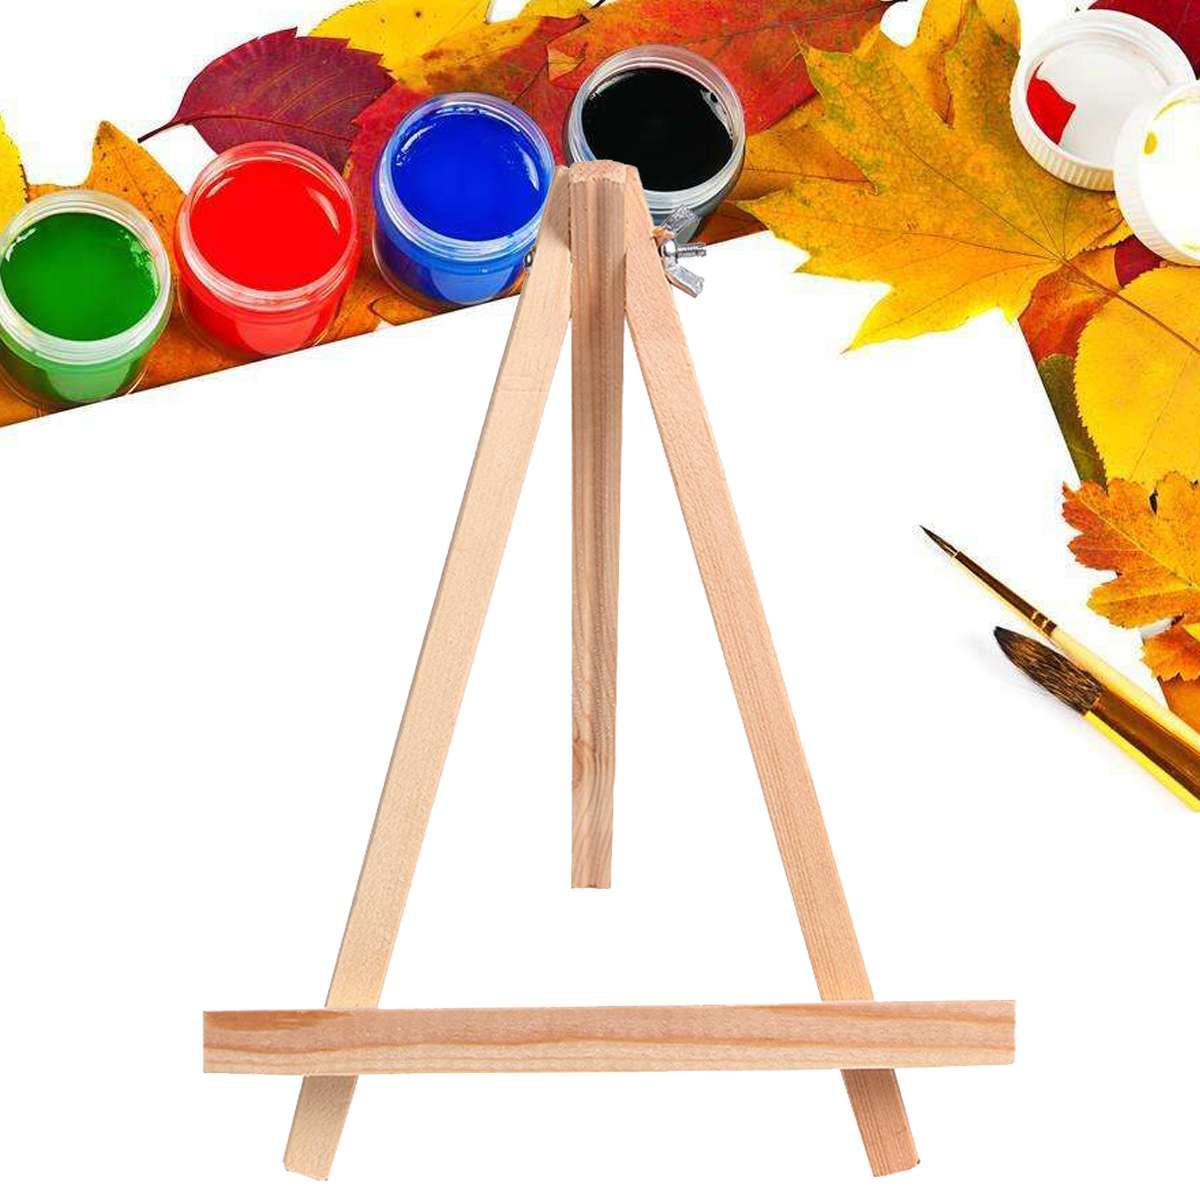 Wooden Art Timber Small Easels School Photo Painting Display Rack Stand Holder Wedding Table Card Holder Party Decoration 10pcs